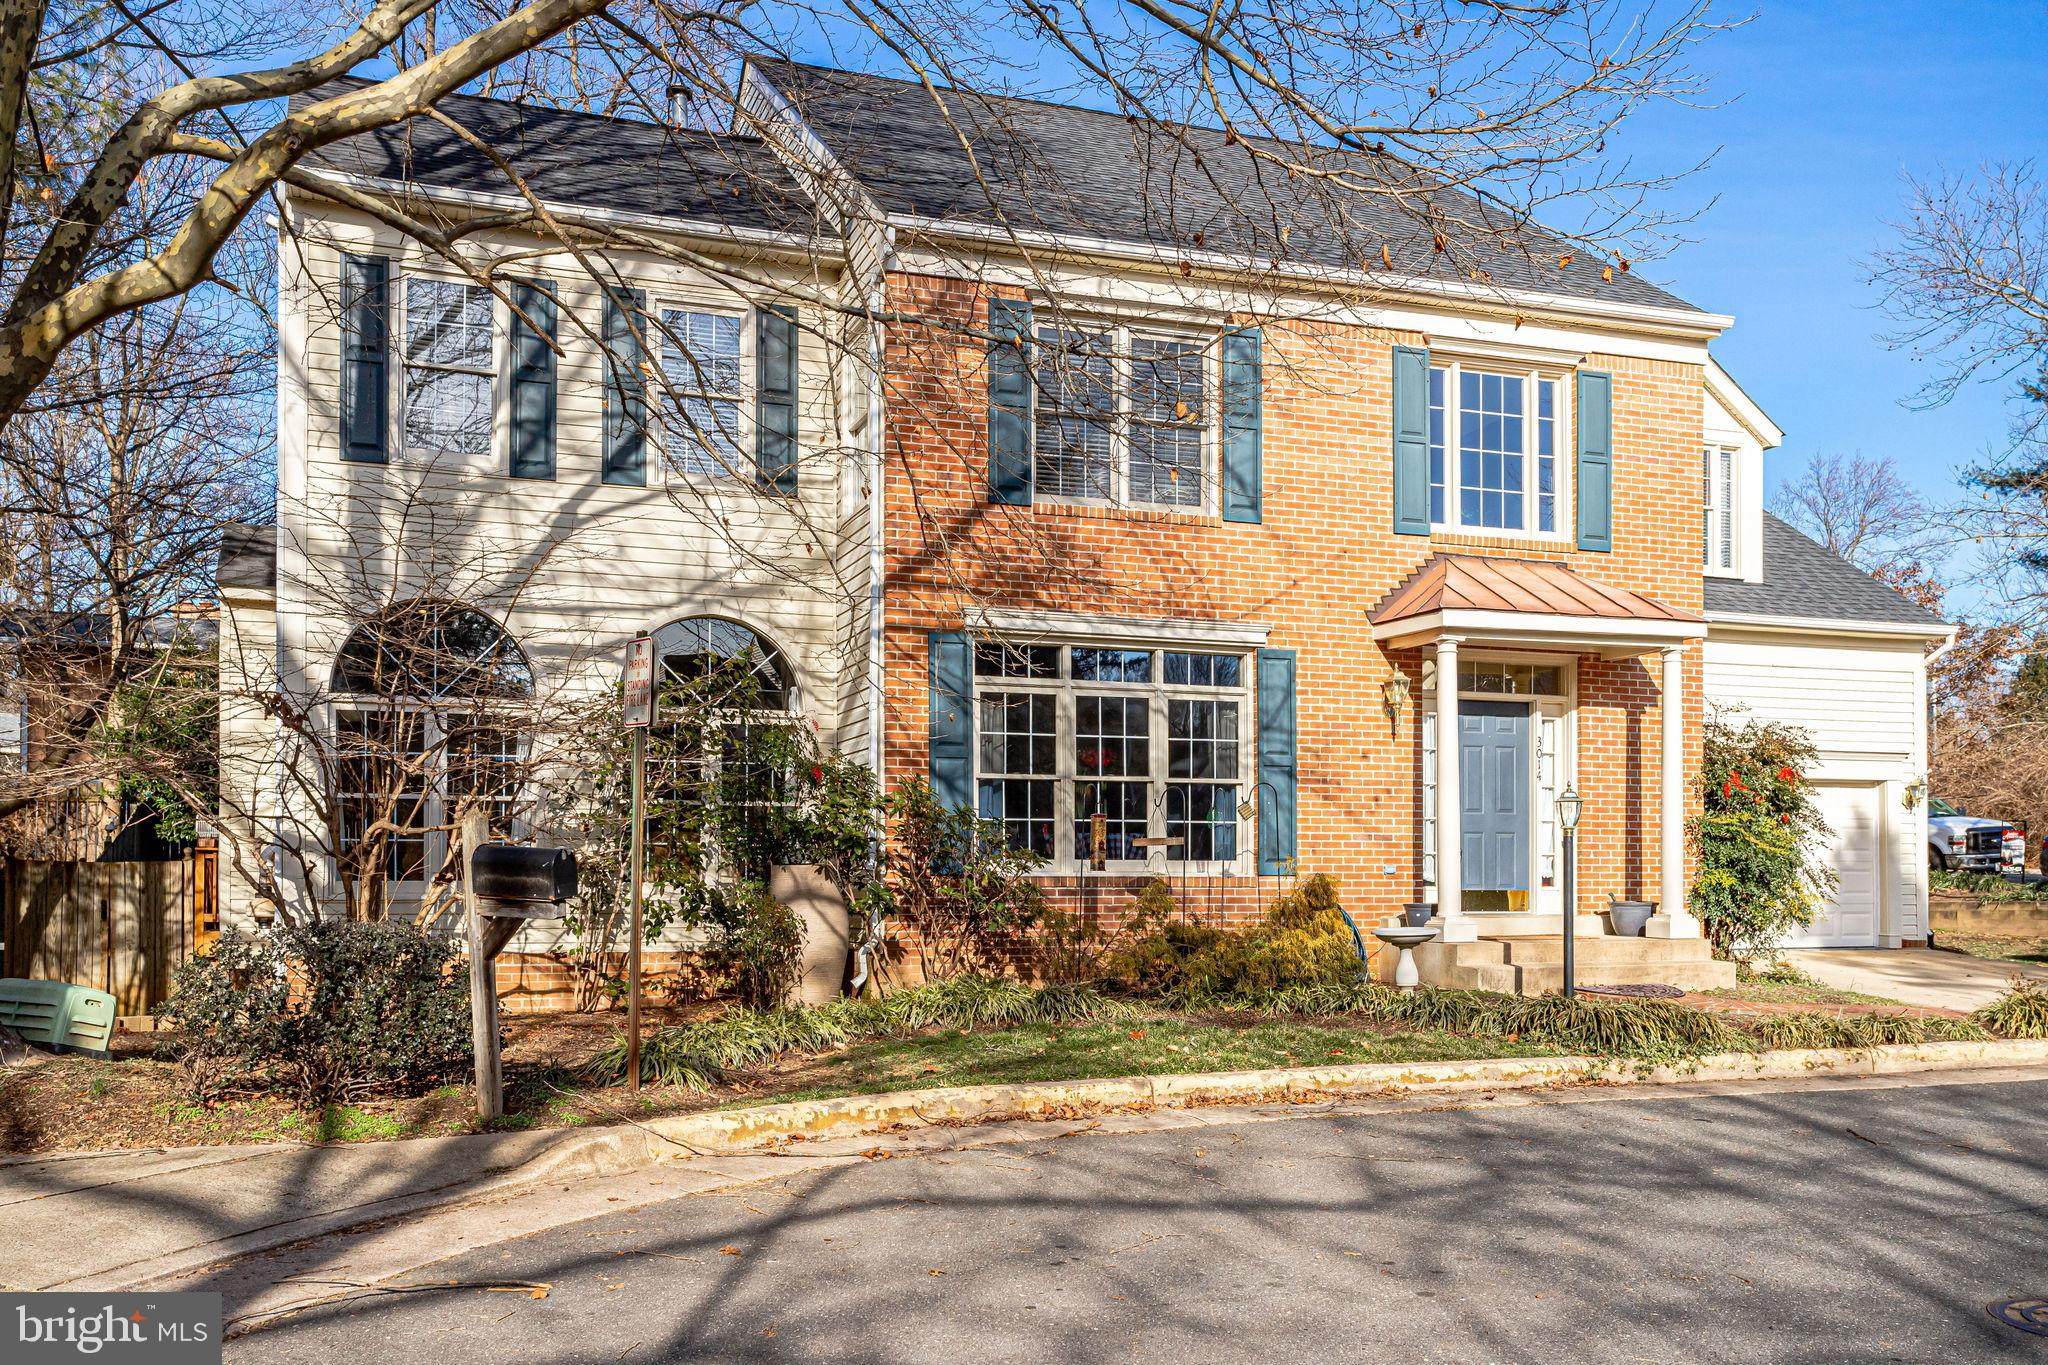 3014 ROSEMOOR LANE, FAIRFAX, VA 22031